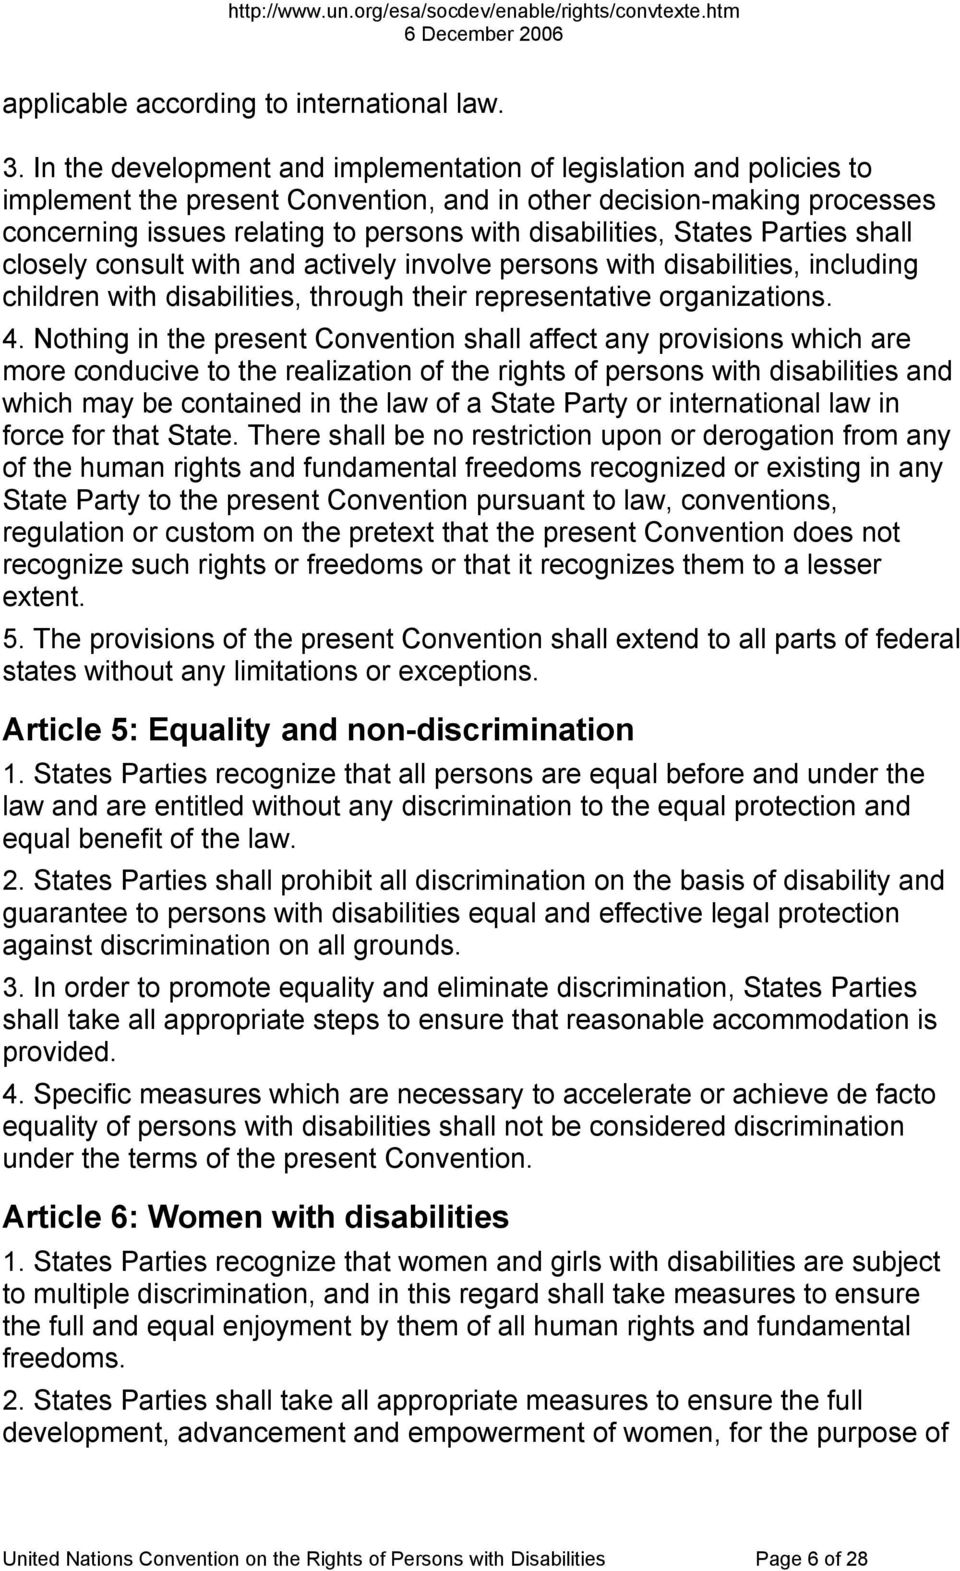 States Parties shall closely consult with and actively involve persons with disabilities, including children with disabilities, through their representative organizations. 4.